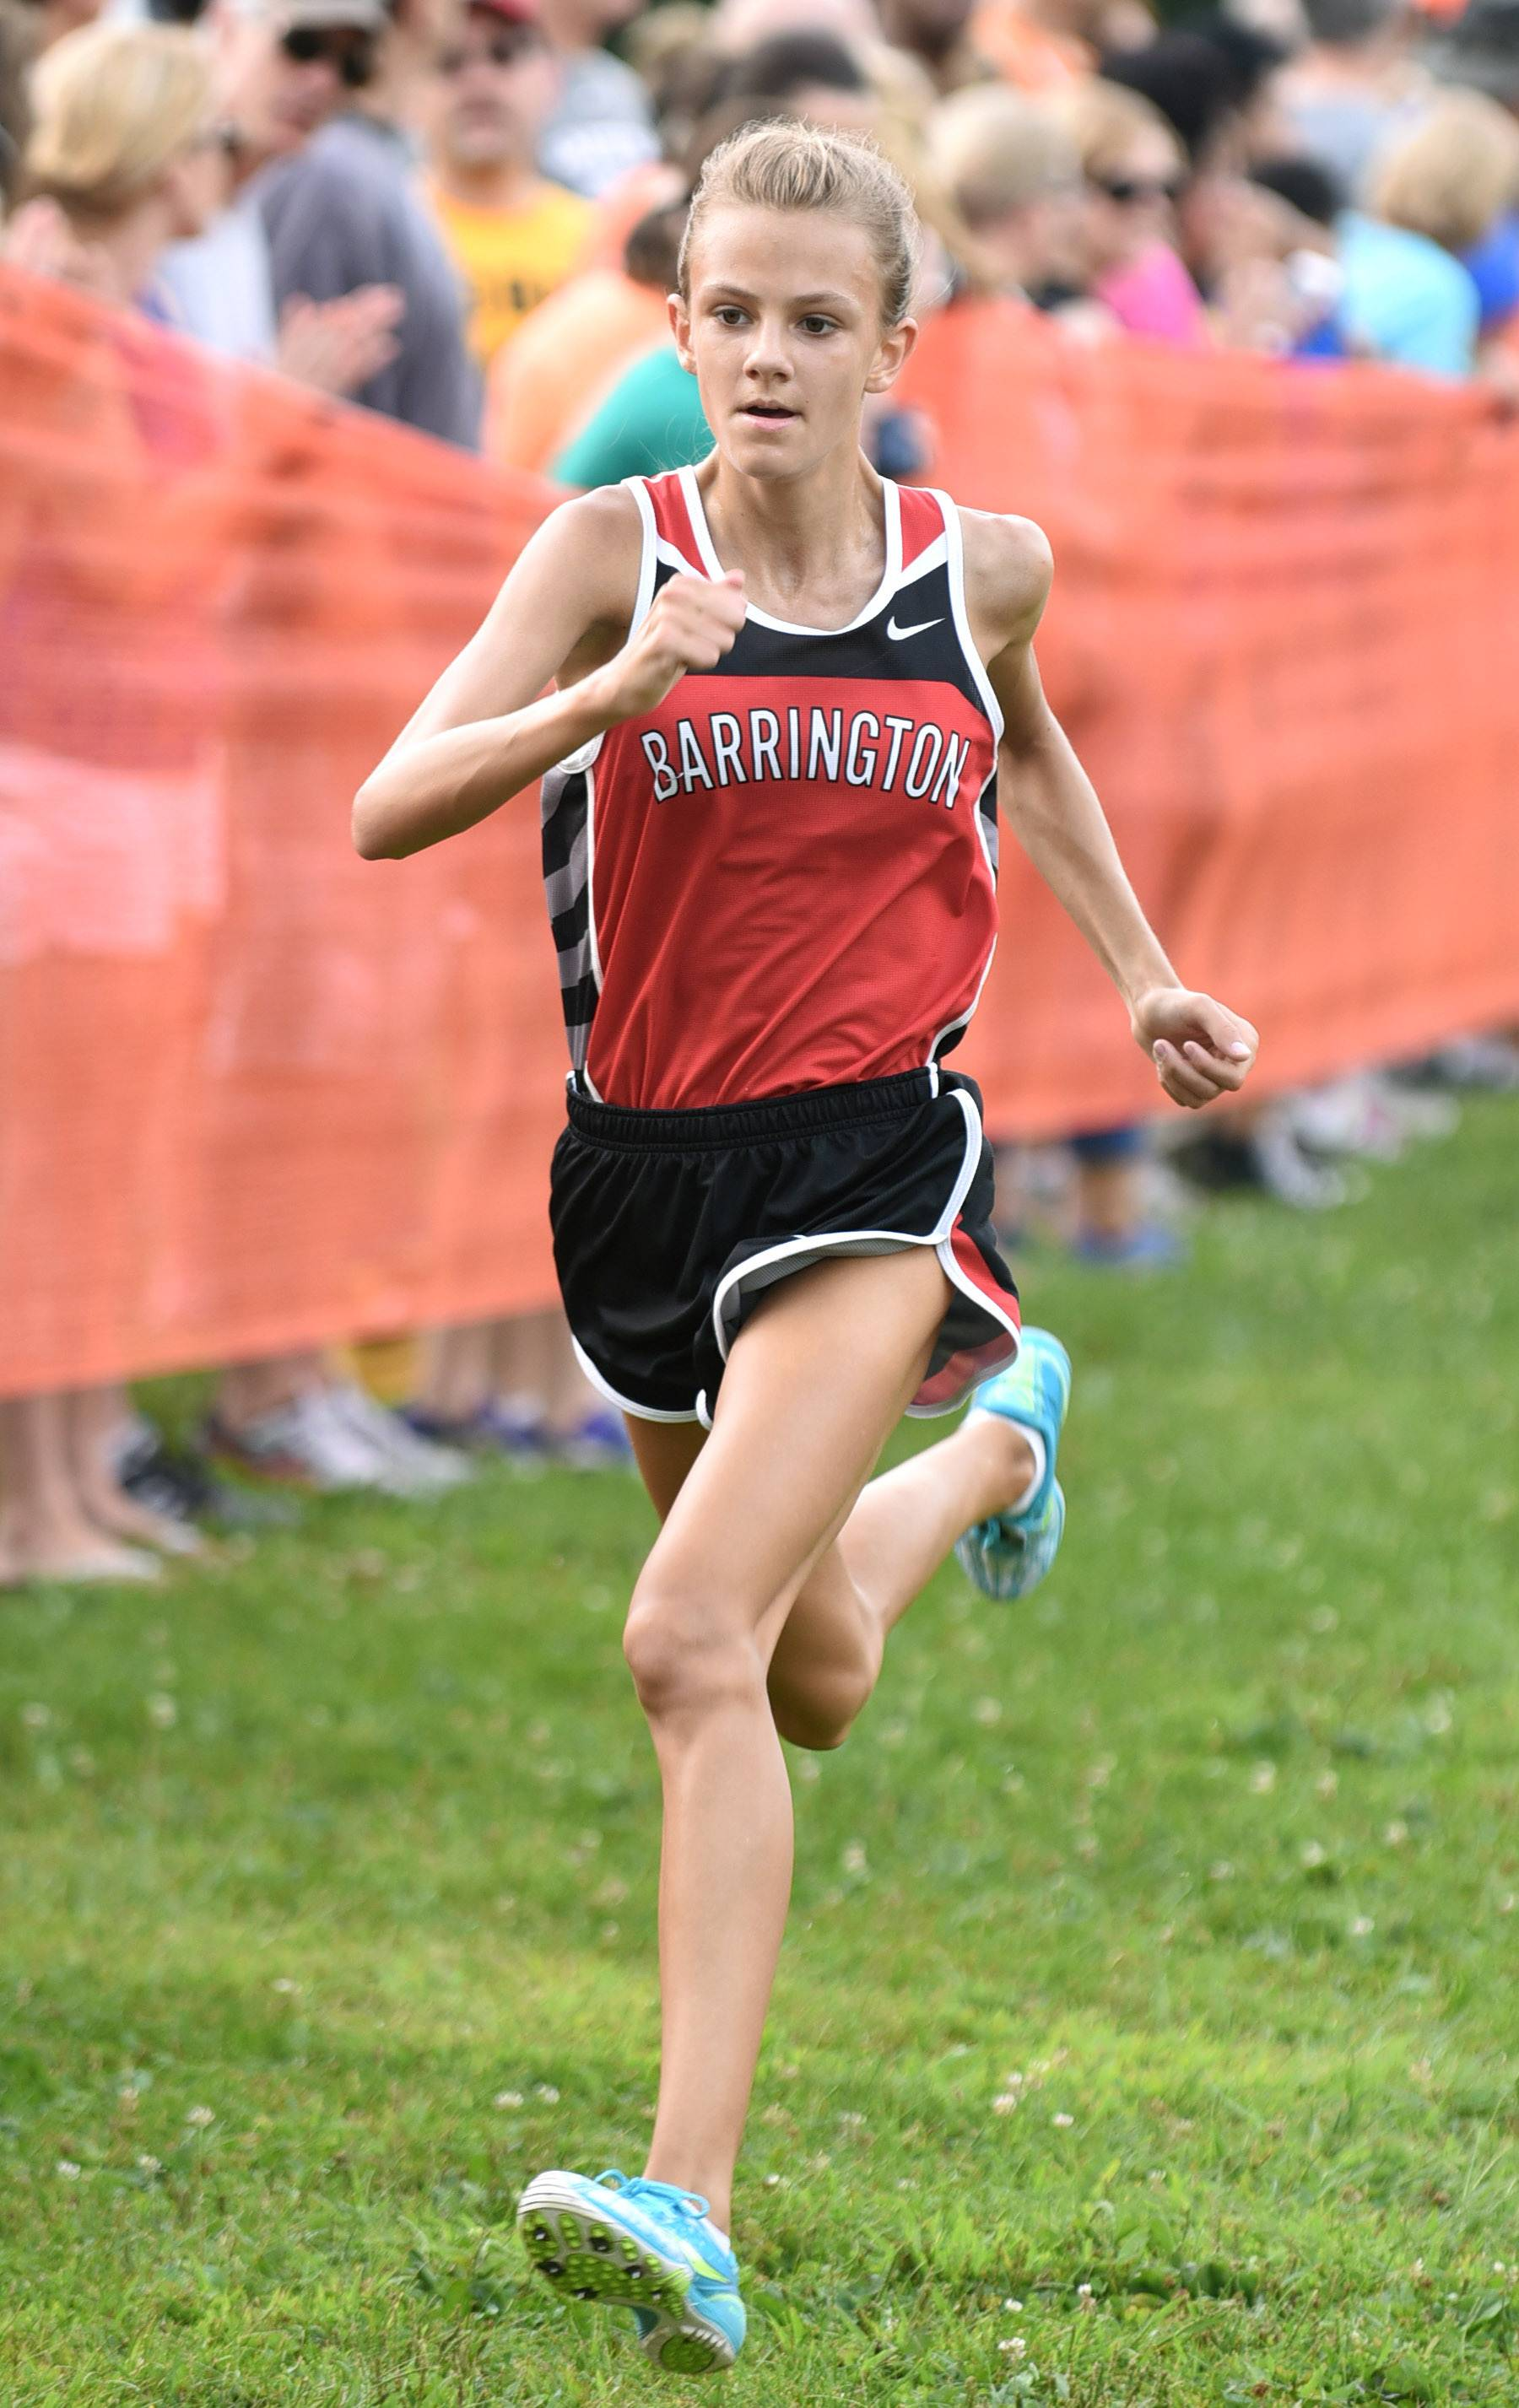 Laura Stoecker/lstoecker@dailyherald.comBarrington's Jocelyn Long takes first place in the girls varsity run in the St. Charles East Leavey Invitational at LeRoy Oakes Forest Preserve in St. Charles Saturday.